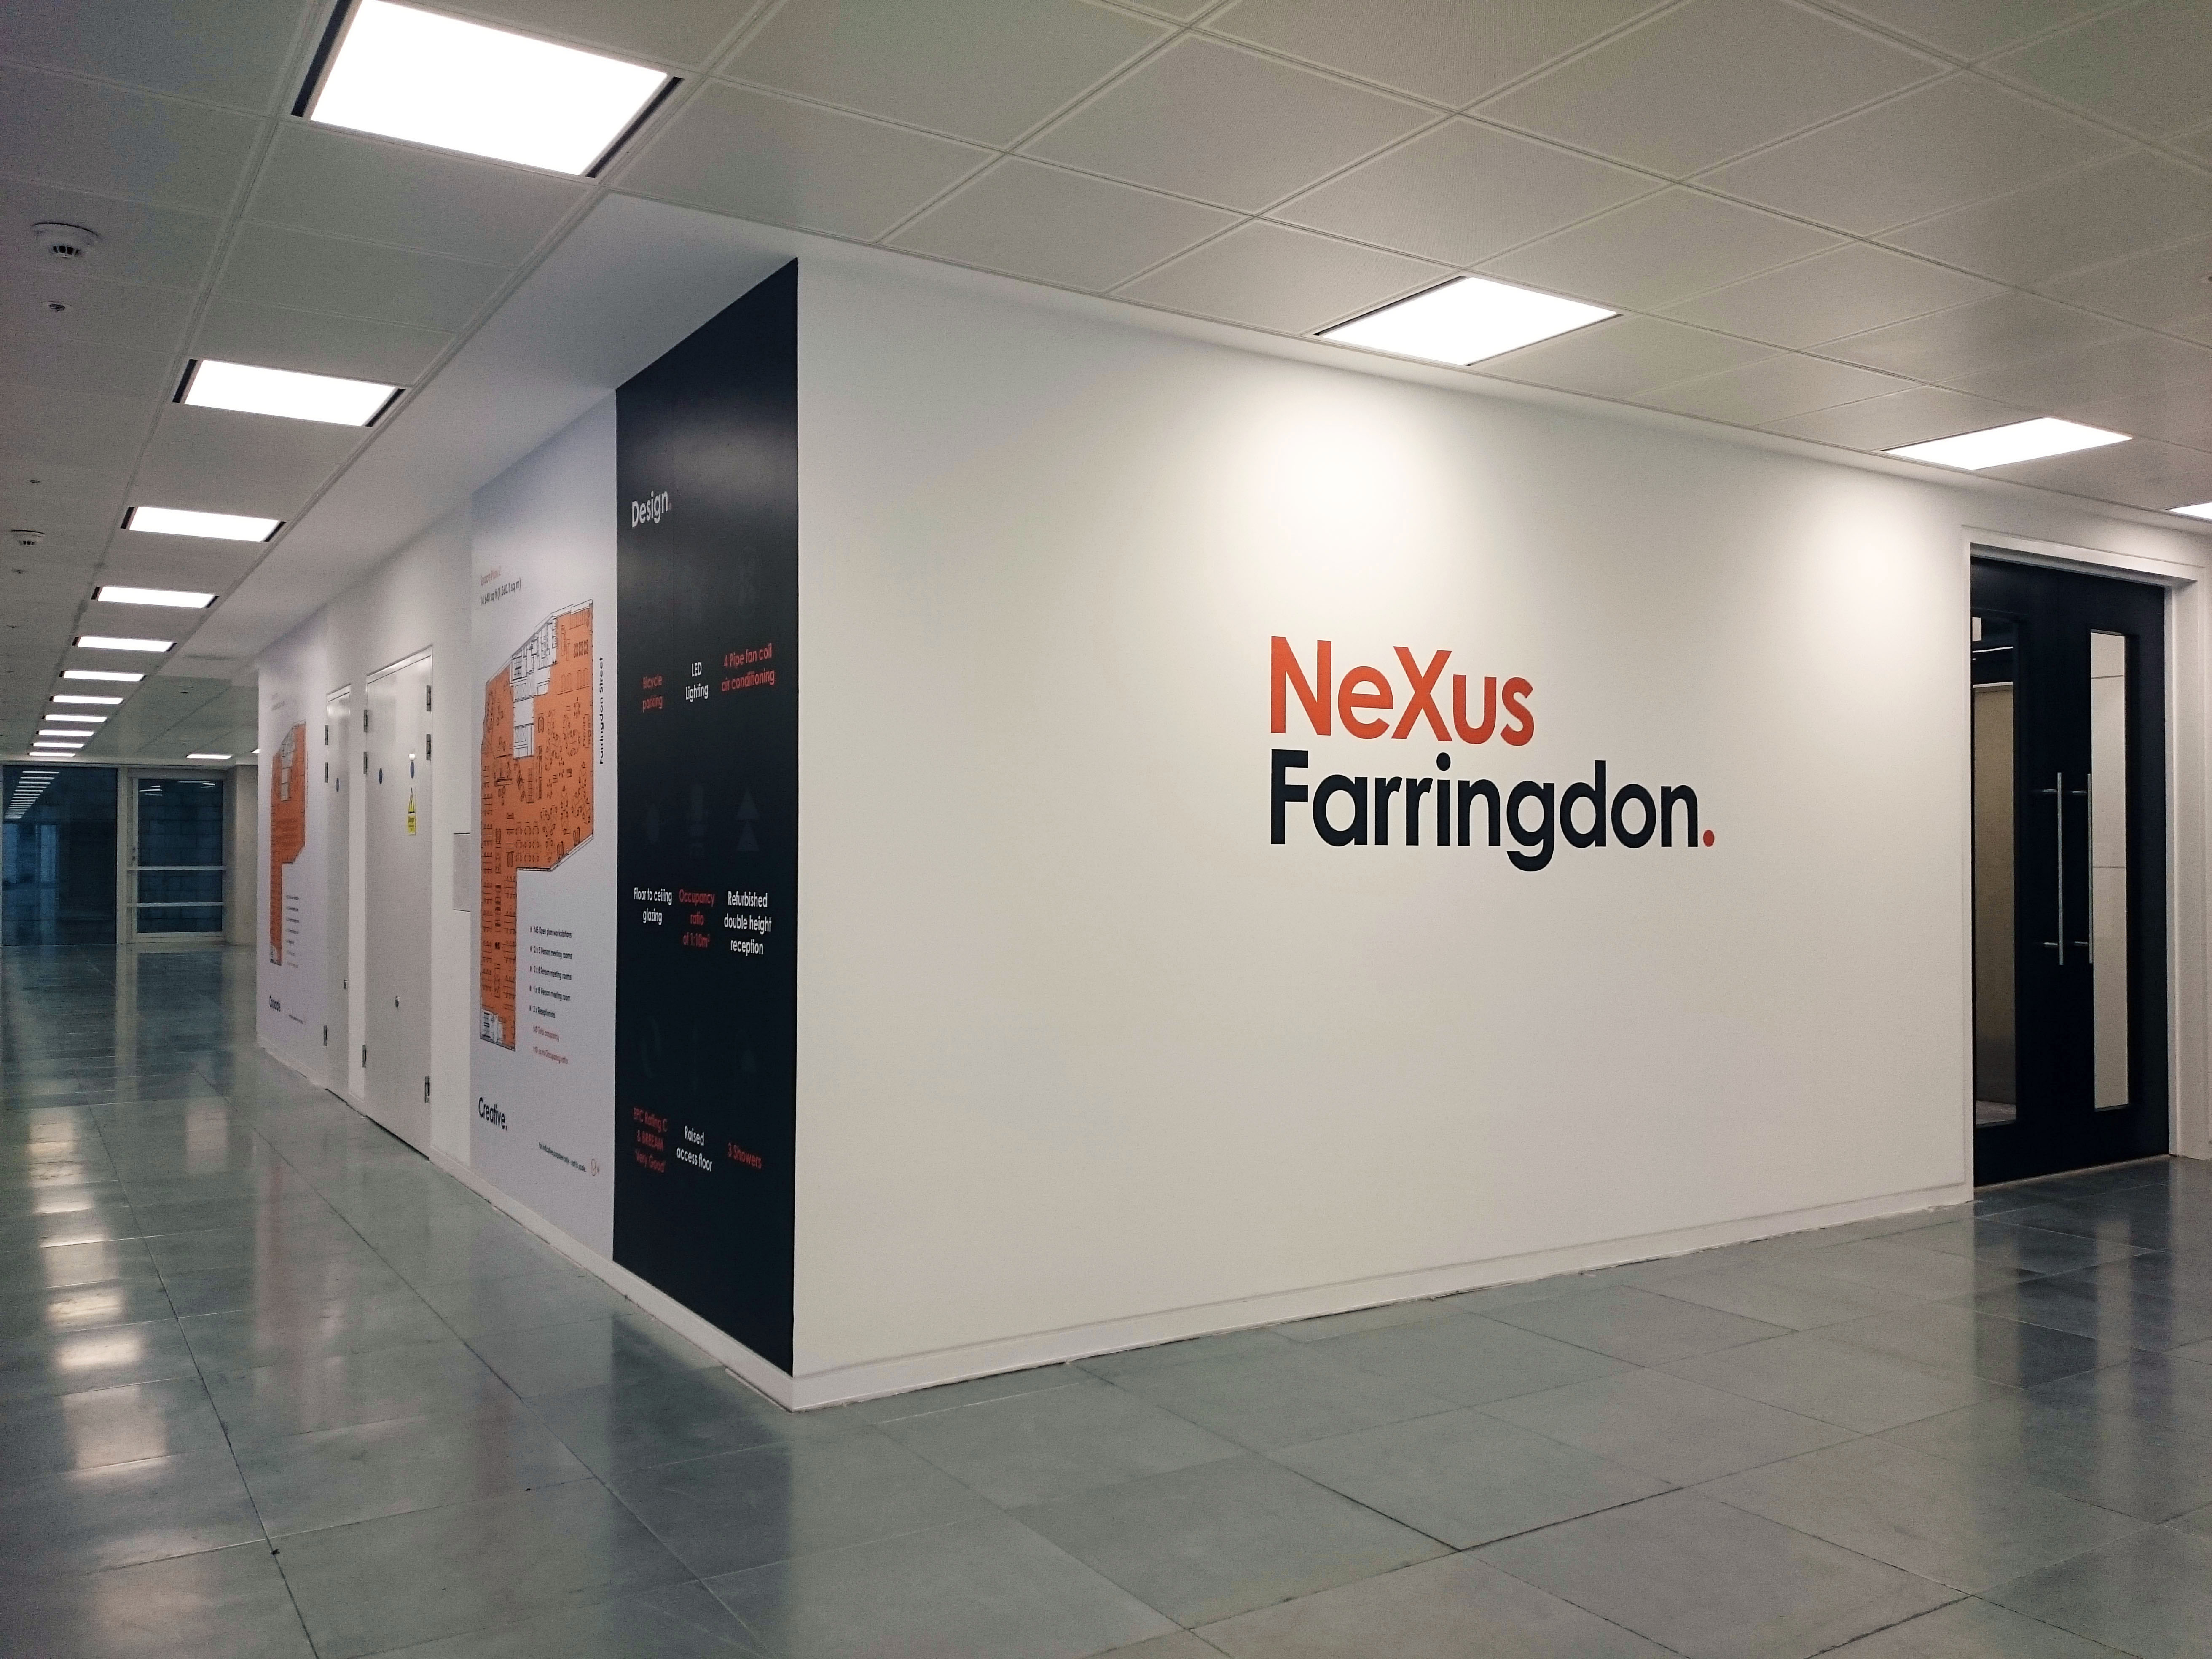 Commercial space wall graphics